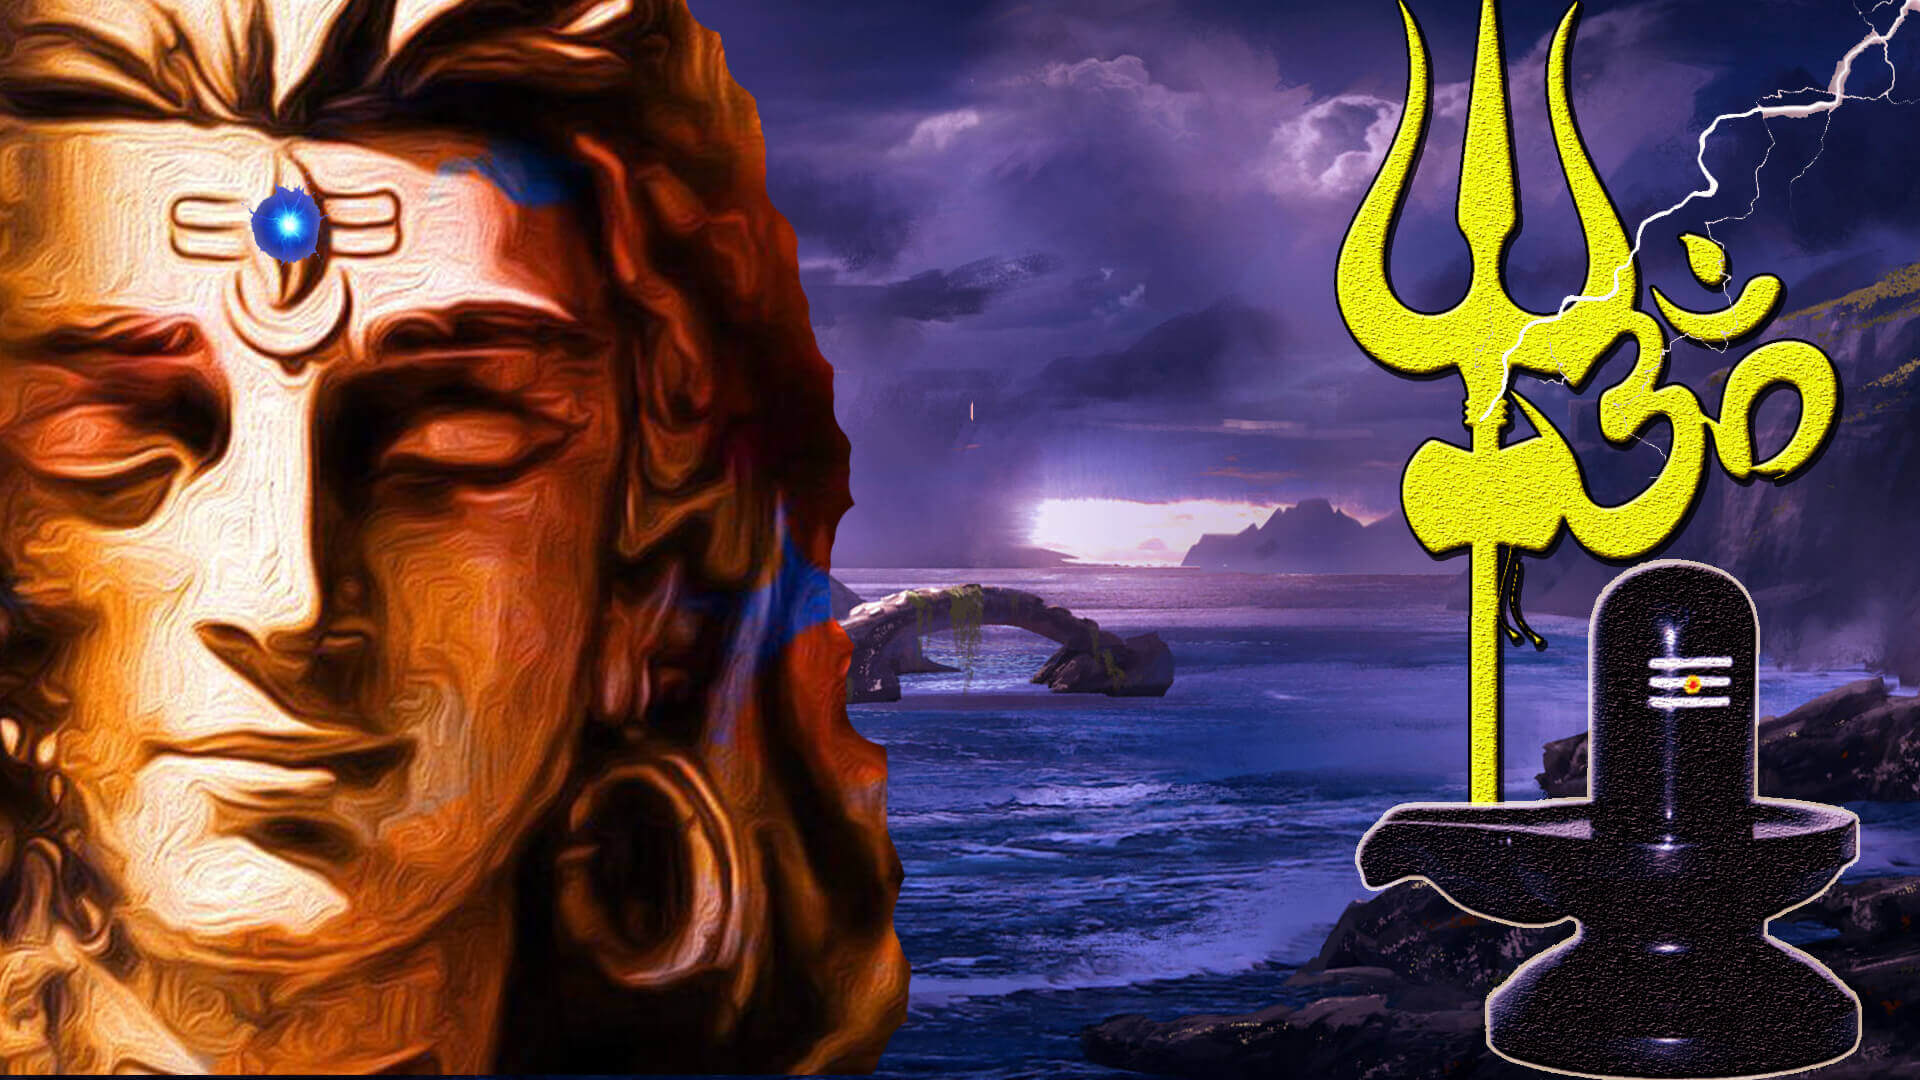 Baba Barfan Somnath Mahadev Shivi Hd Image Wallpapers